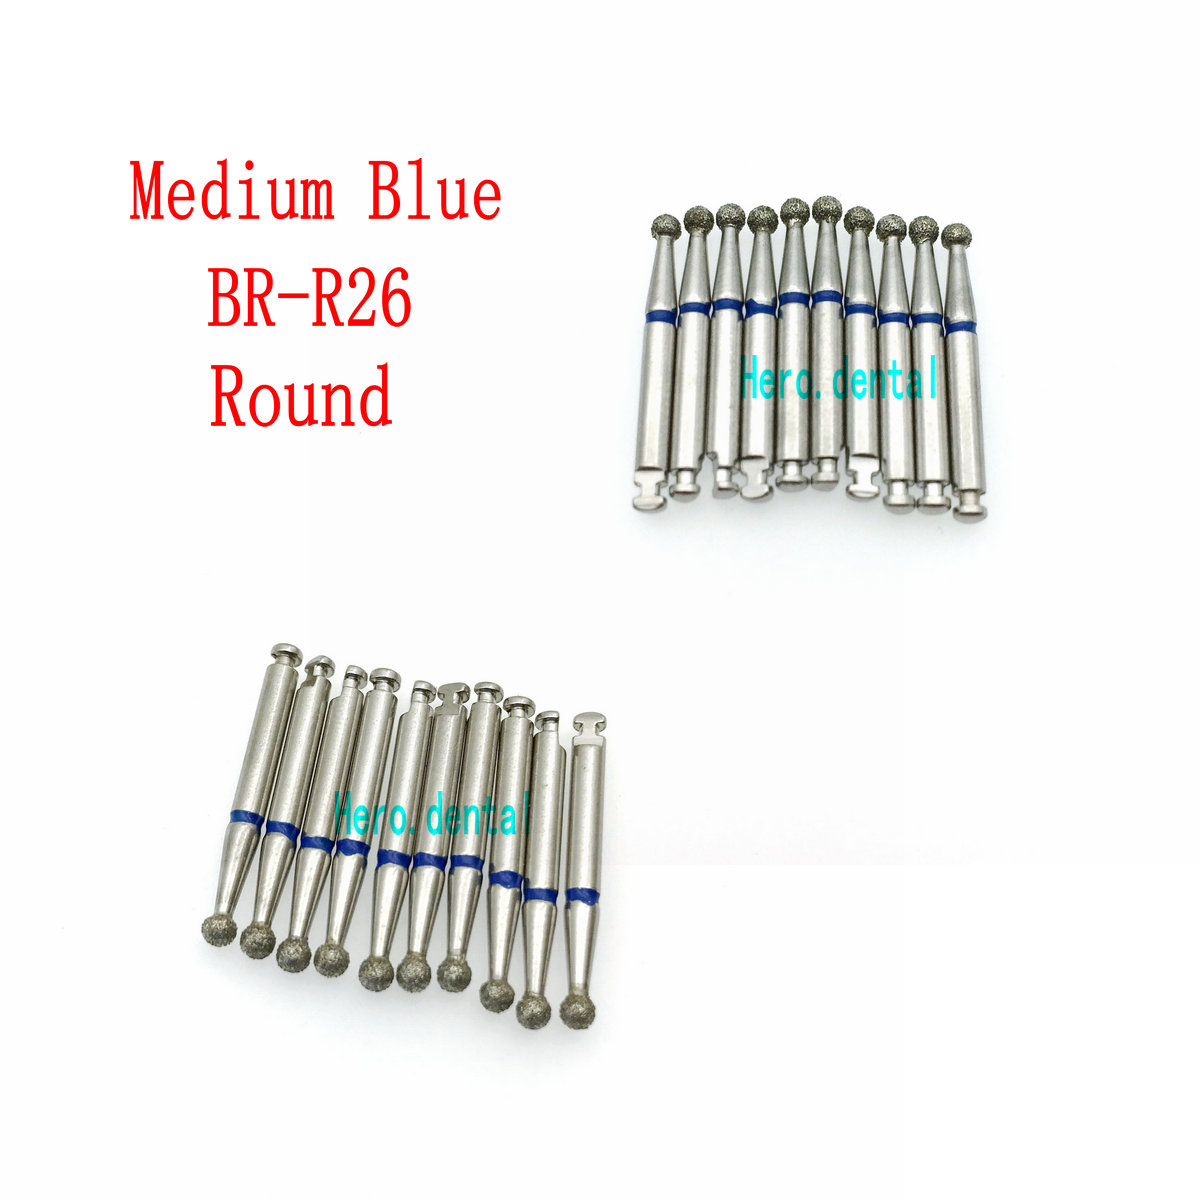 10Pcs Low Speed Dental Diamond Burs For RA 2.35mm Shank Handpiece Polisher Trimming Round Head Clinic Drill